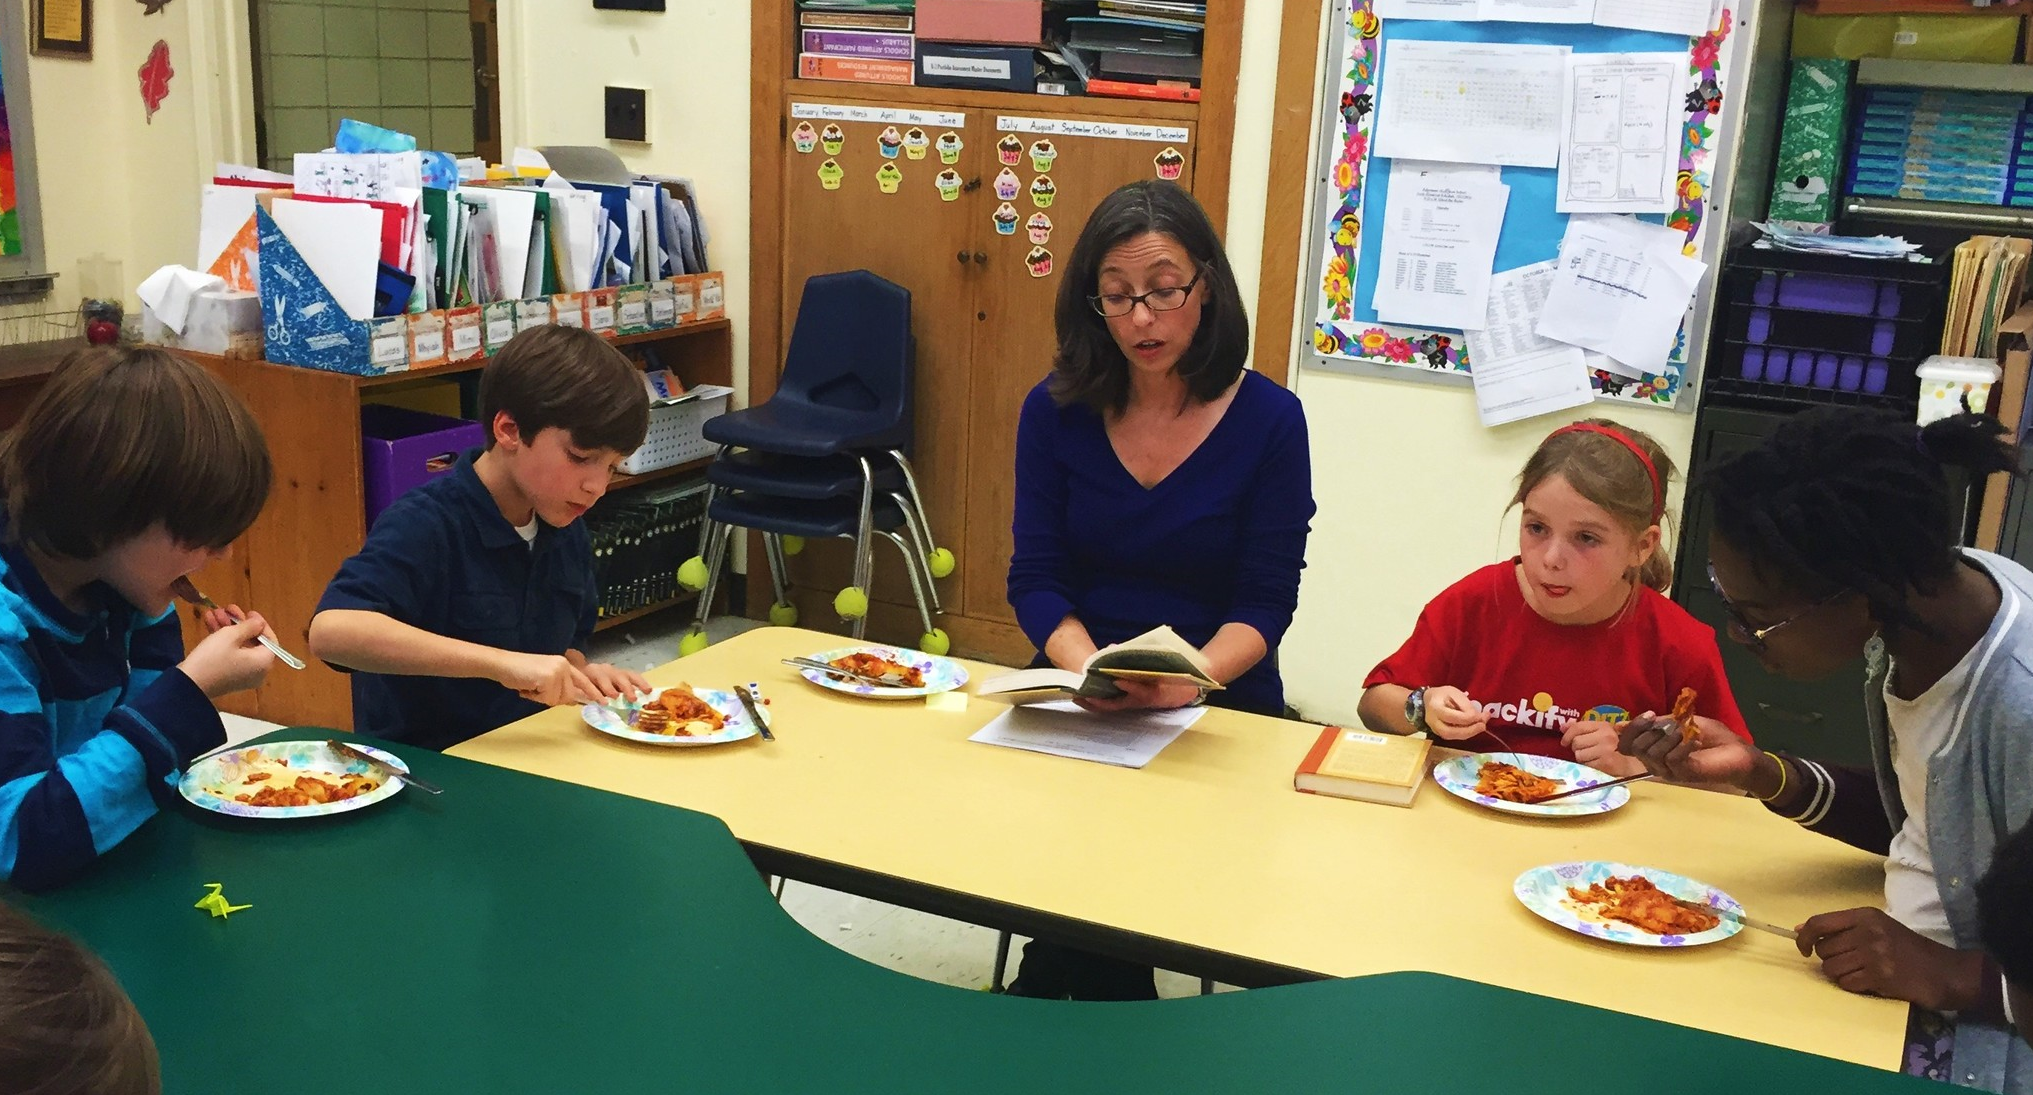 Eating  Chicken Enchiladas  while Ms. Lynley reads from Book 7: The Vile Village.